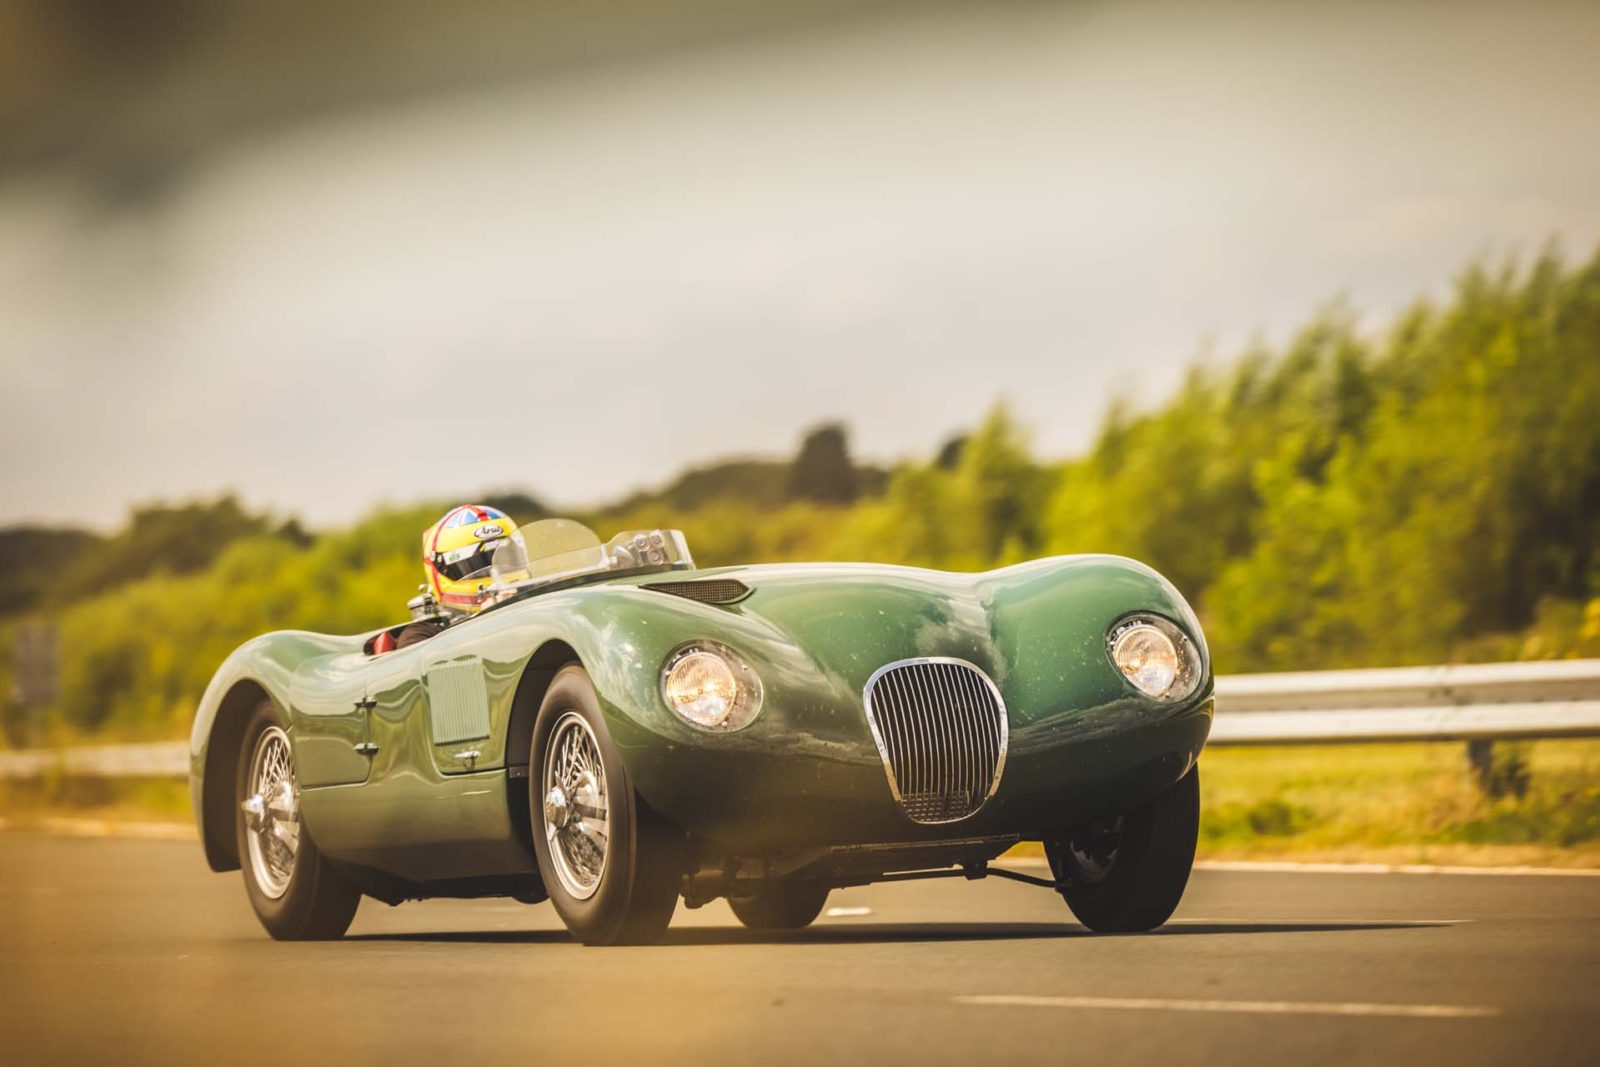 jaguar-c-type-returning-to-production-in-latest-continuation-car-project